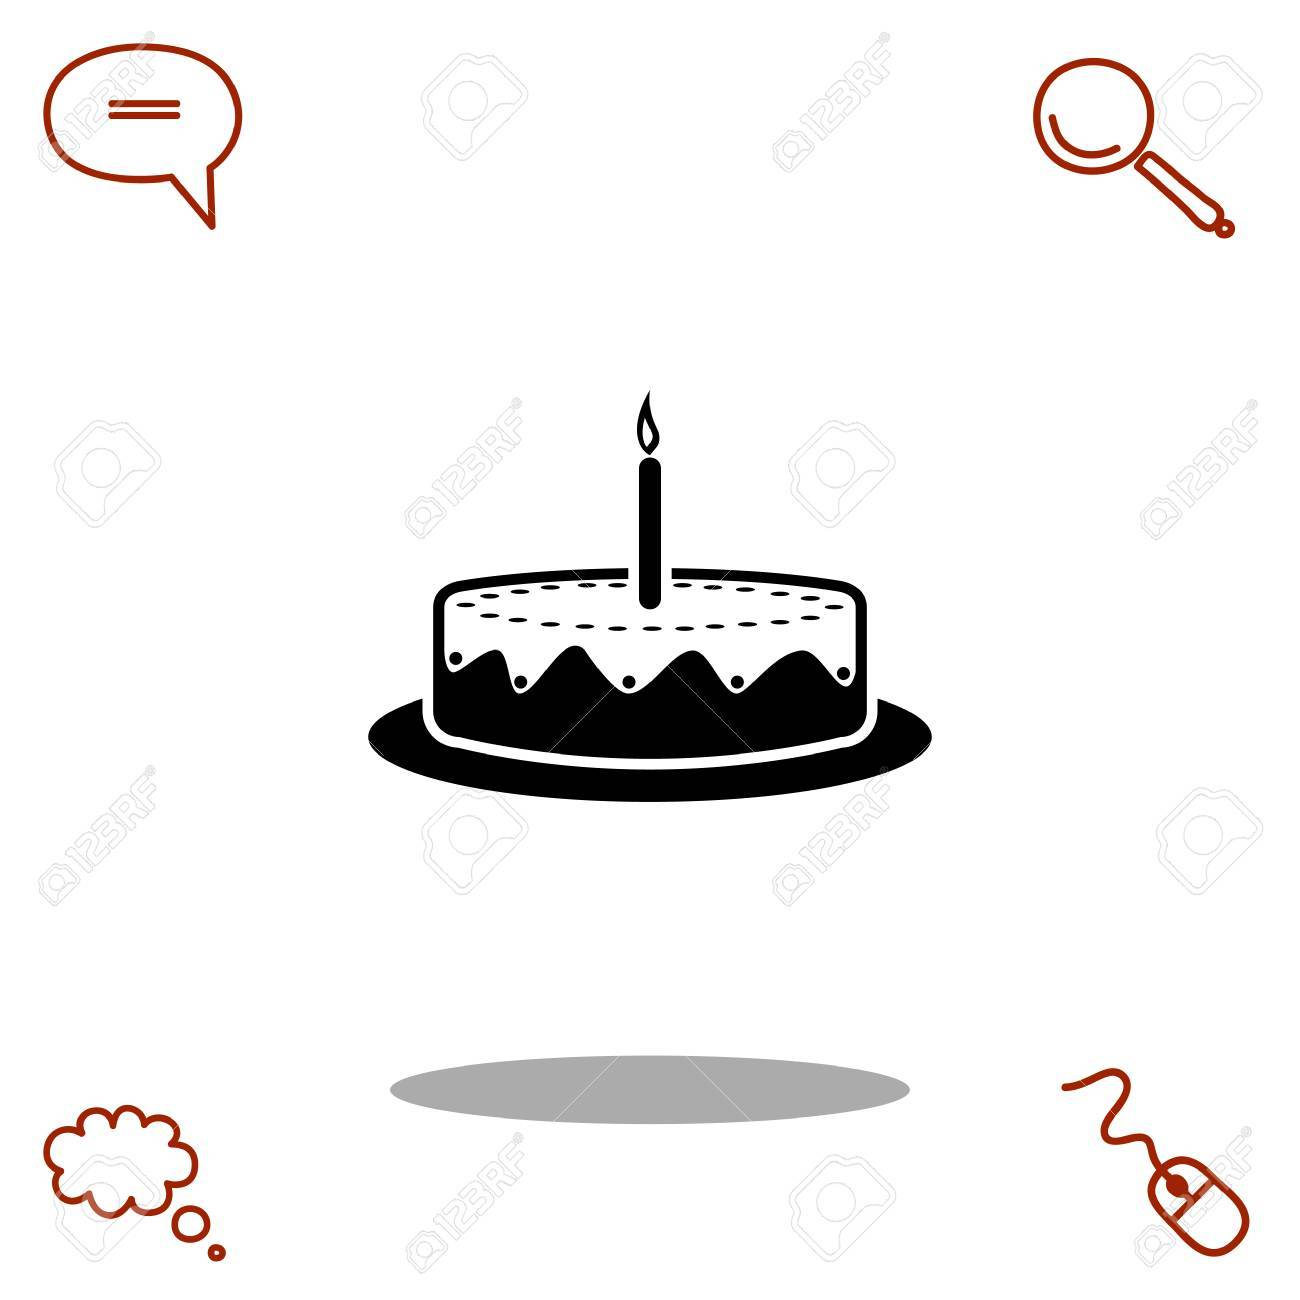 cake vector icon royalty free cliparts vectors and stock rh 123rf com